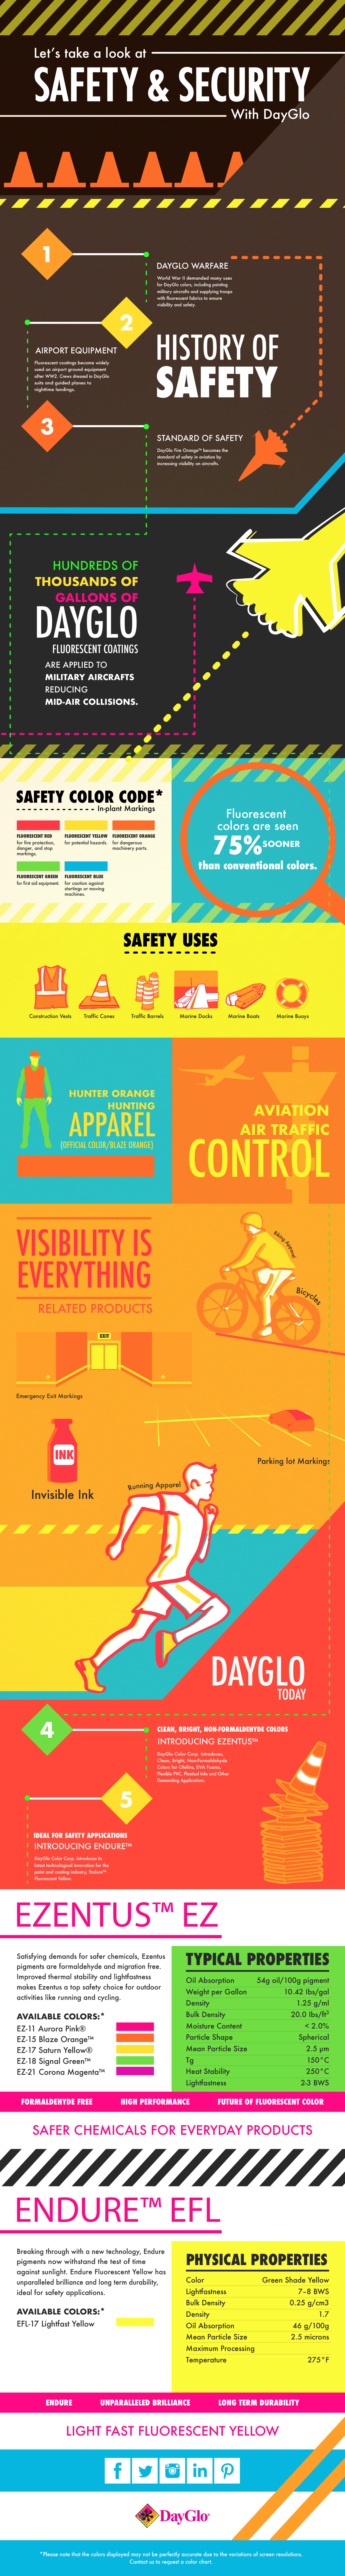 Safety and Security with DayGlo infographic